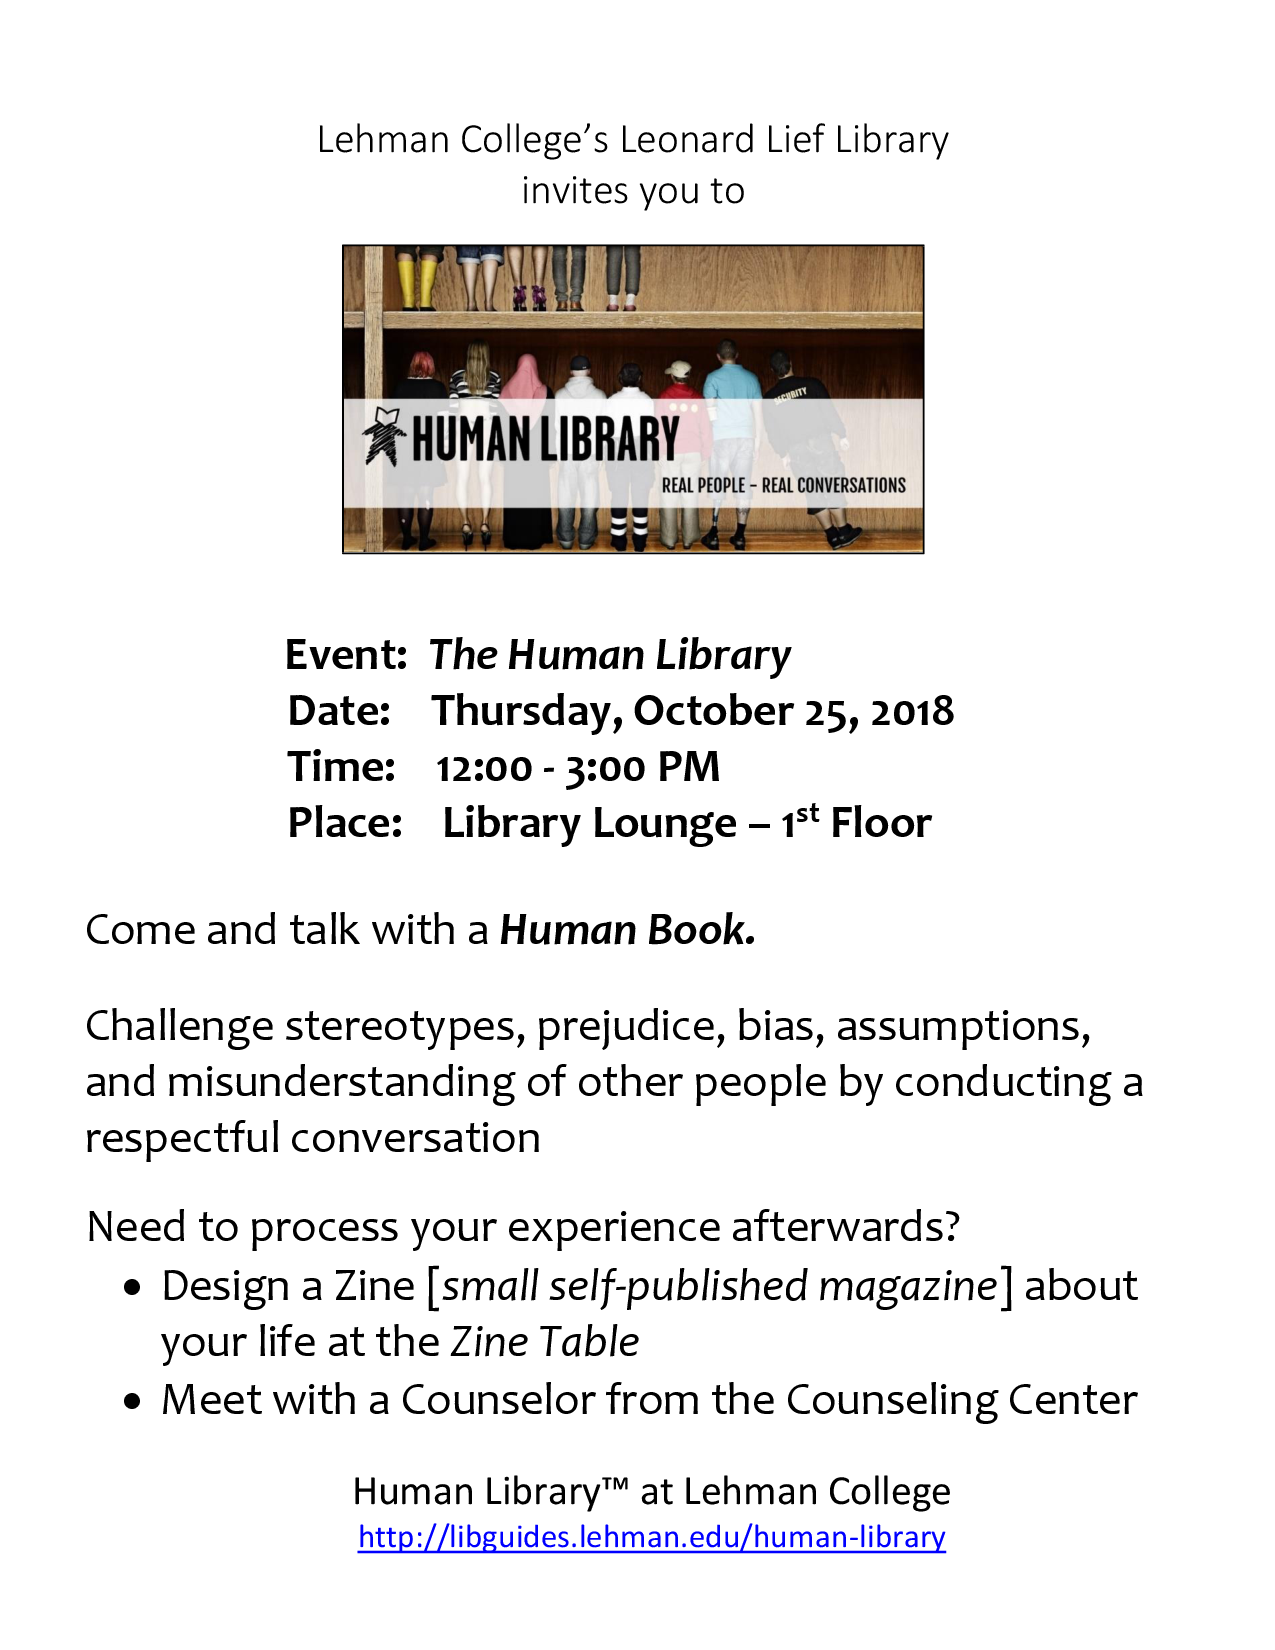 Human Library and Zine Event